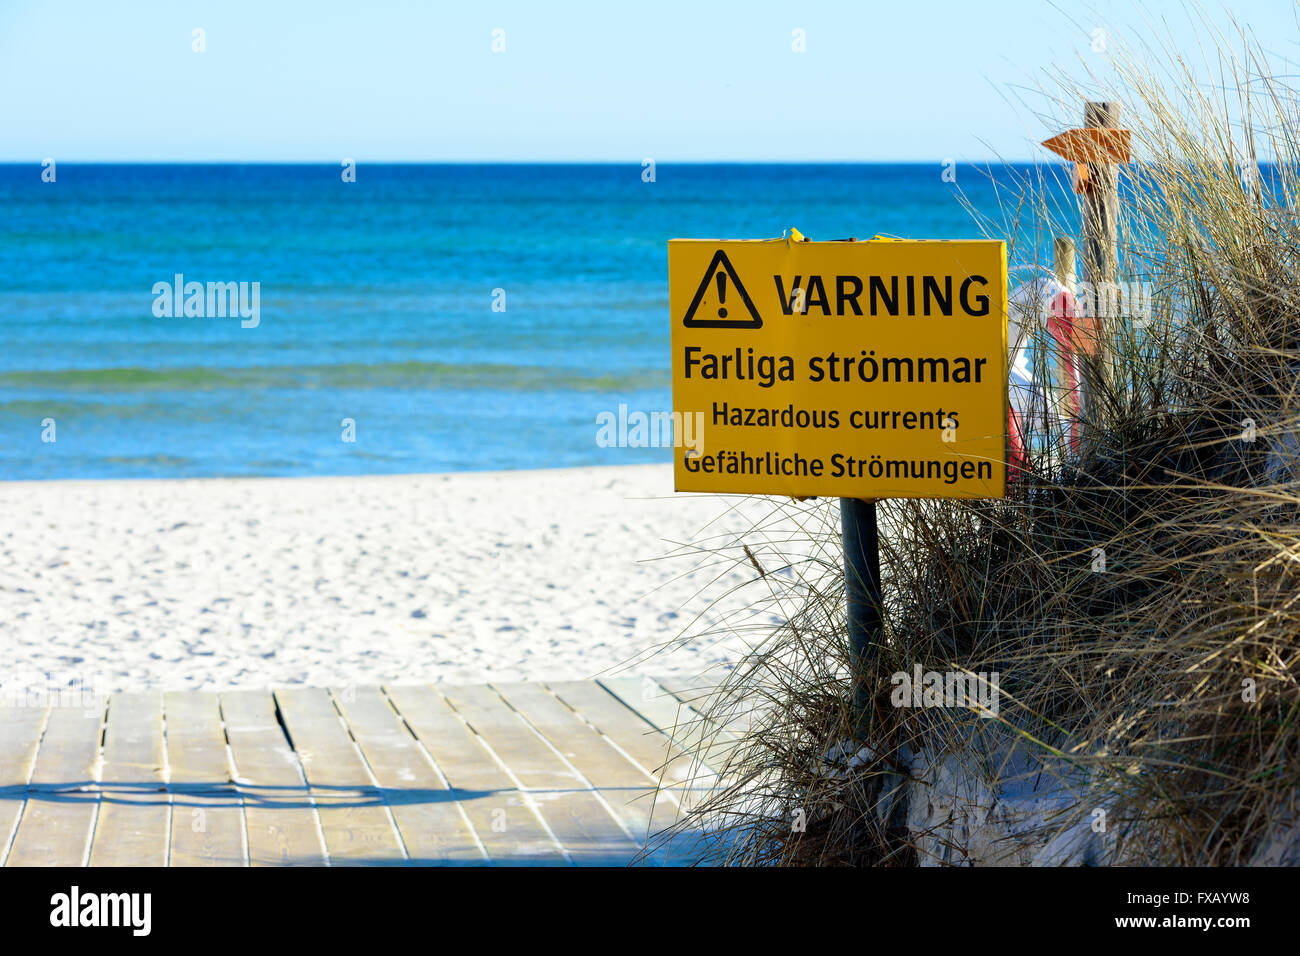 Sandhammaren, Sweden - April 1, 2016: Yellow warning sign about hazardous currents in the water at a sandy beach - Stock Image